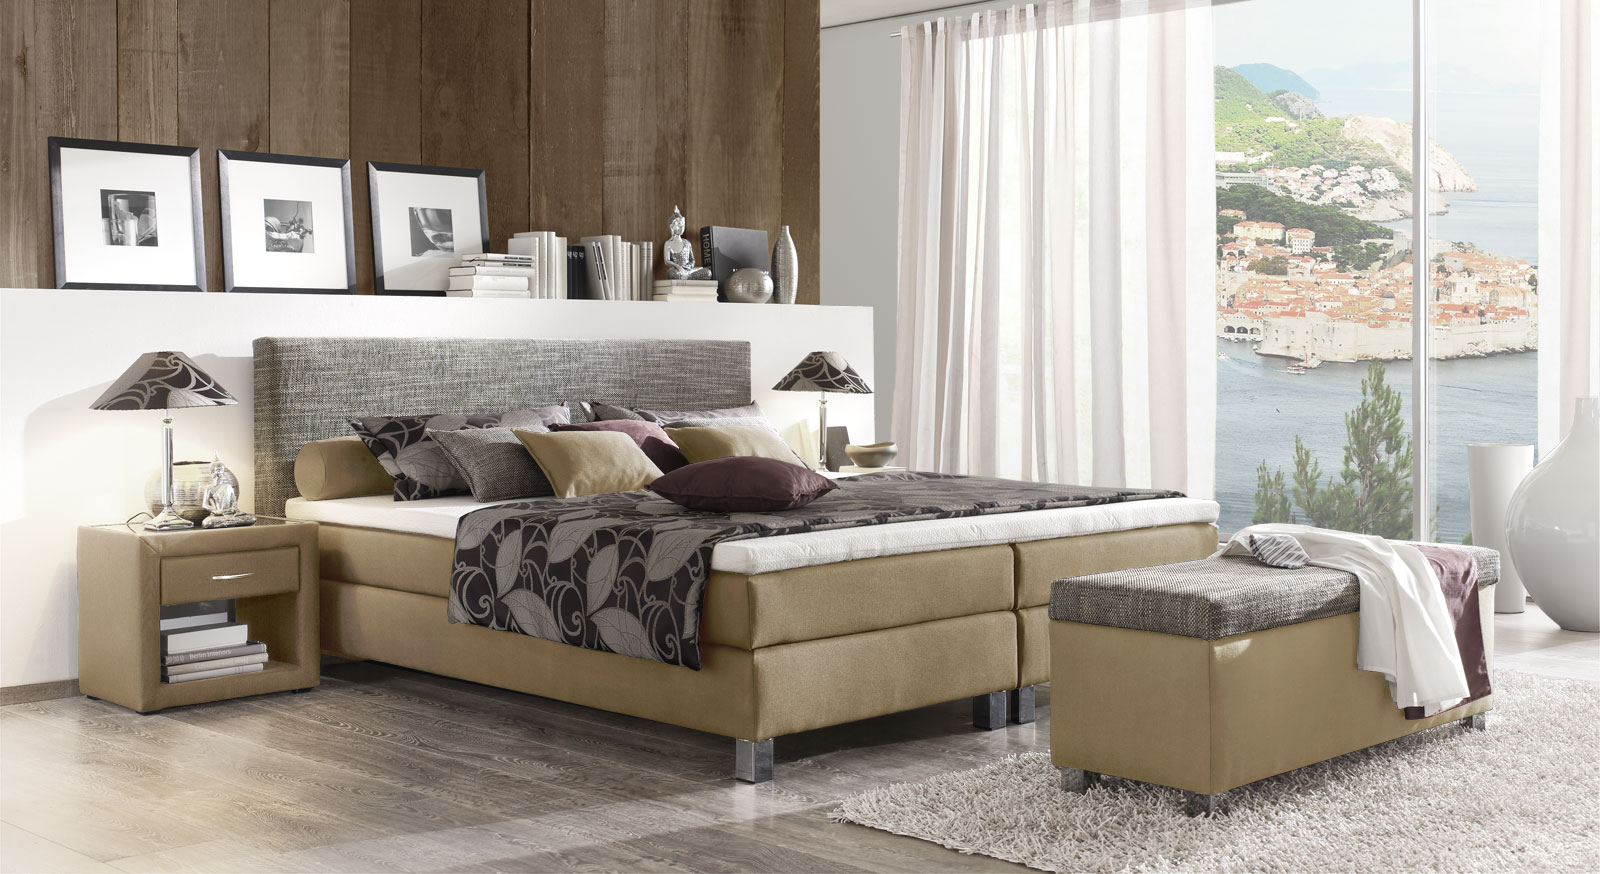 wohnzimmer beige braun. Black Bedroom Furniture Sets. Home Design Ideas